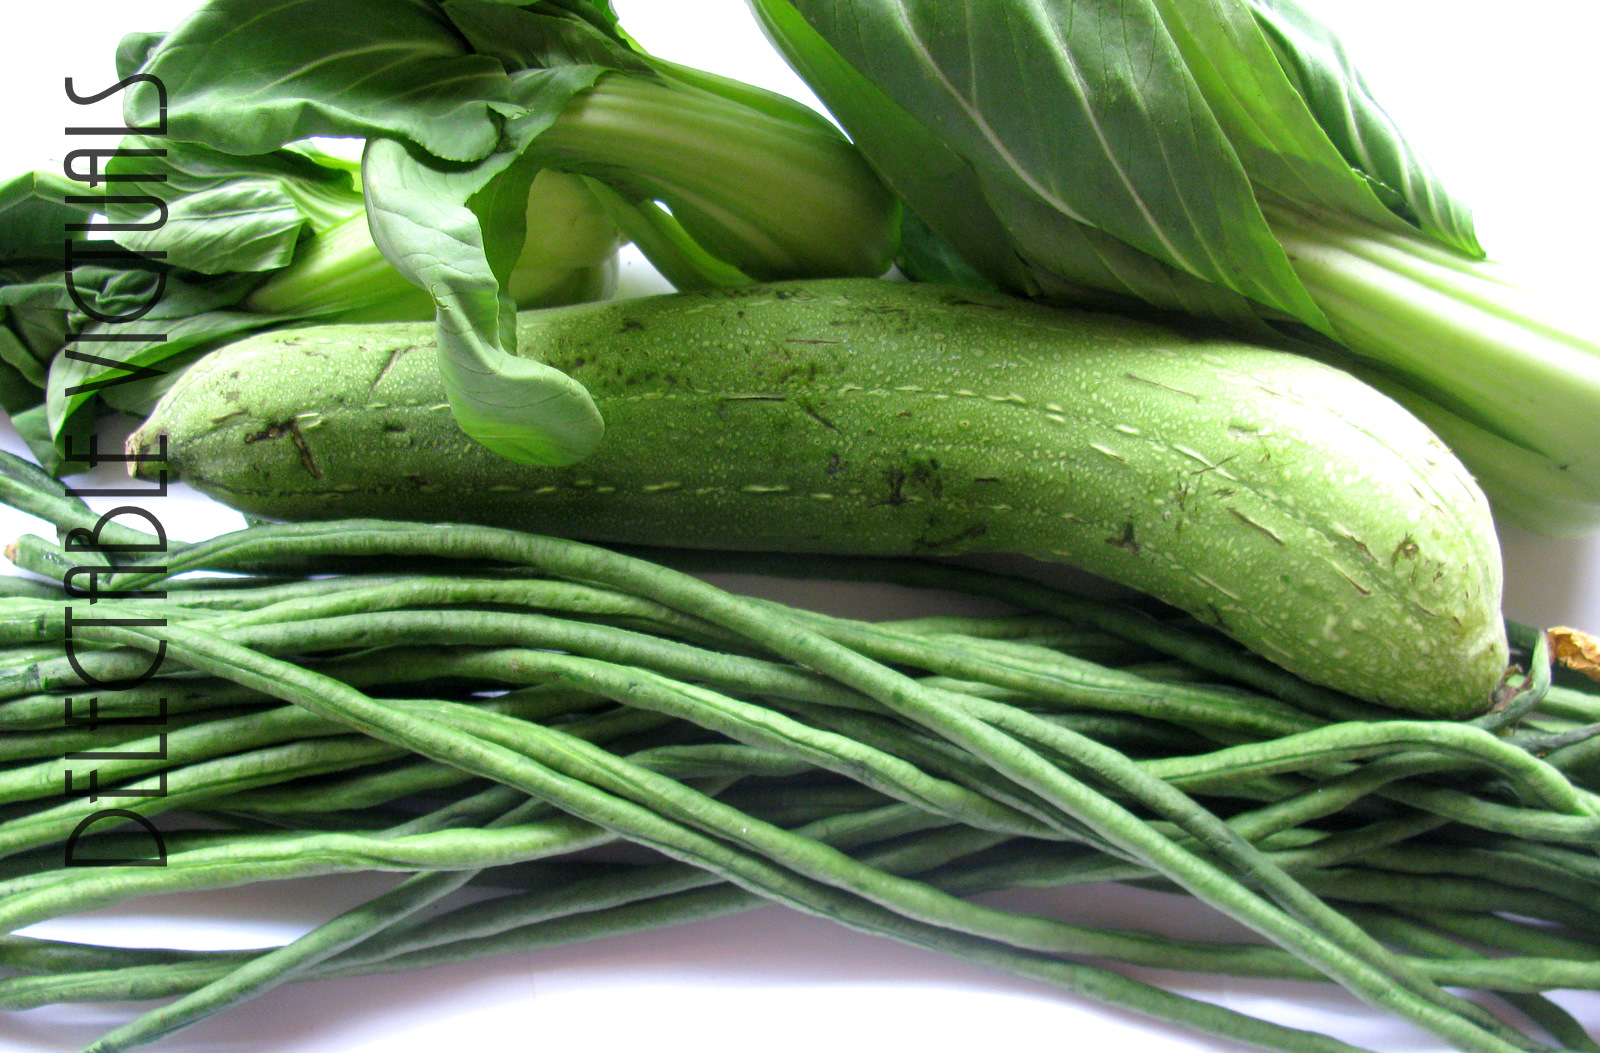 Delectable Victuals: Luffa, Snake Beans, Baby Bok Choy - photo#23